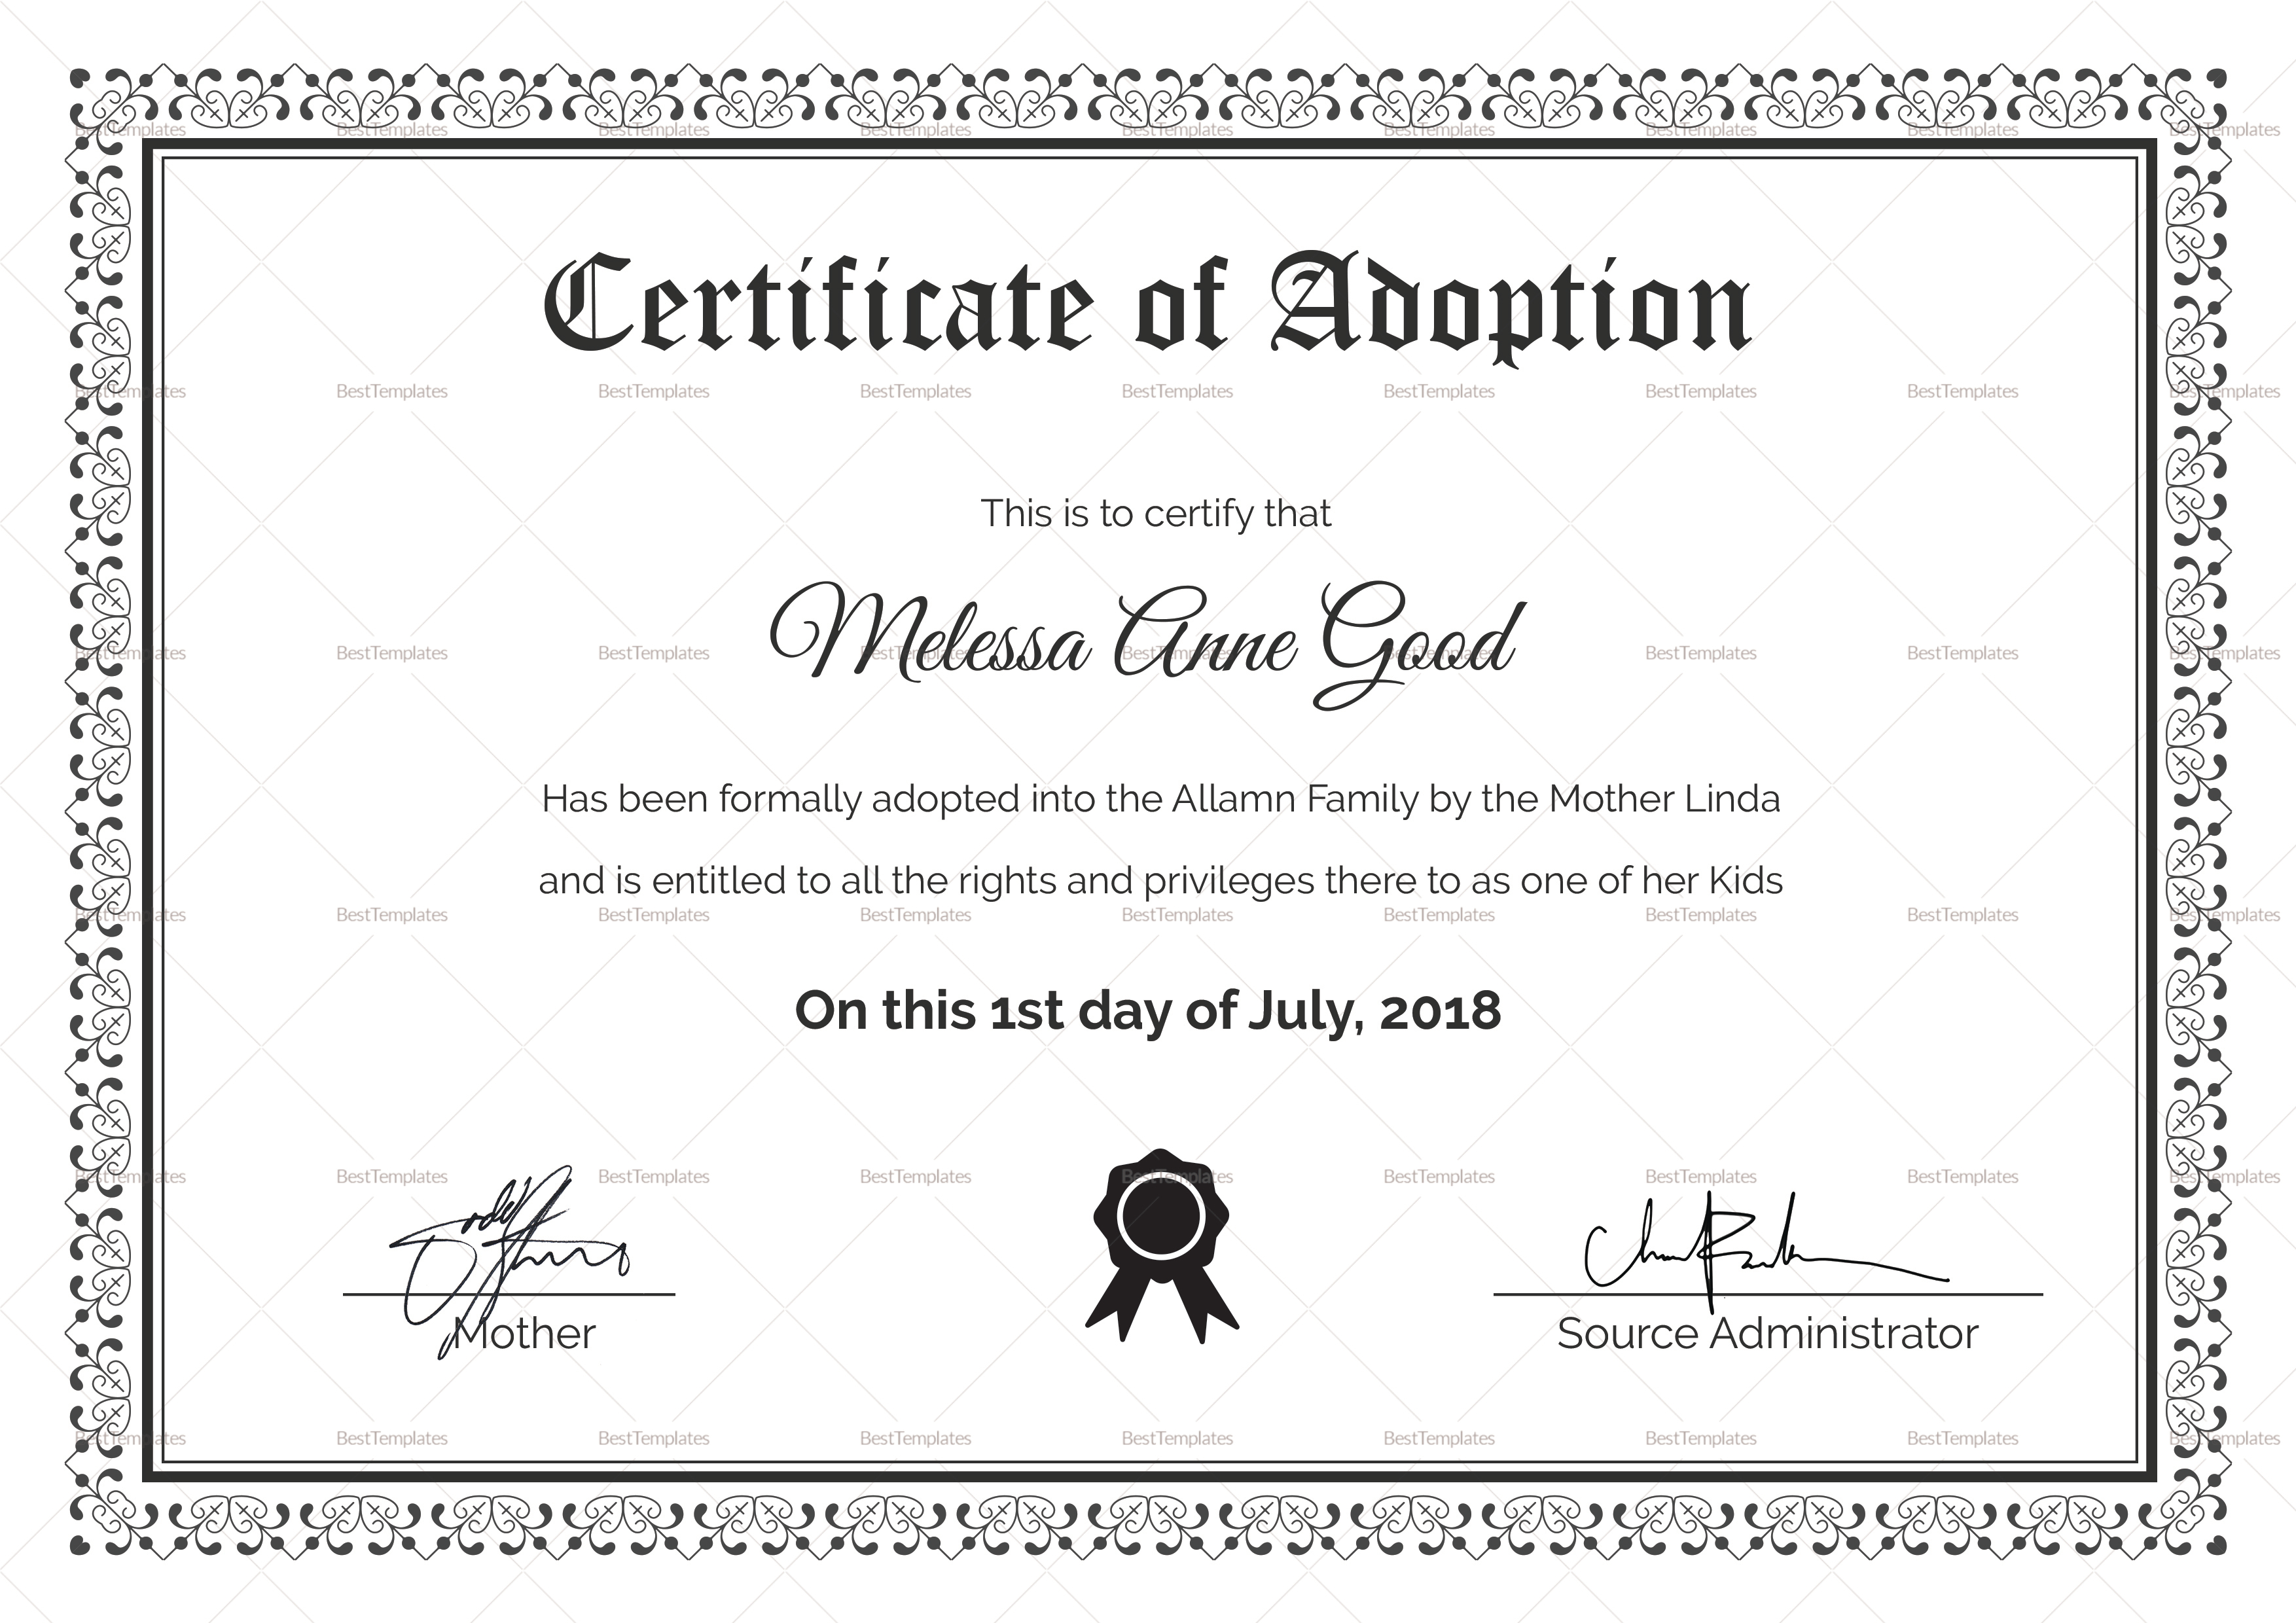 Adoption Certificate Design Template Intended For Adoption Certificate Template